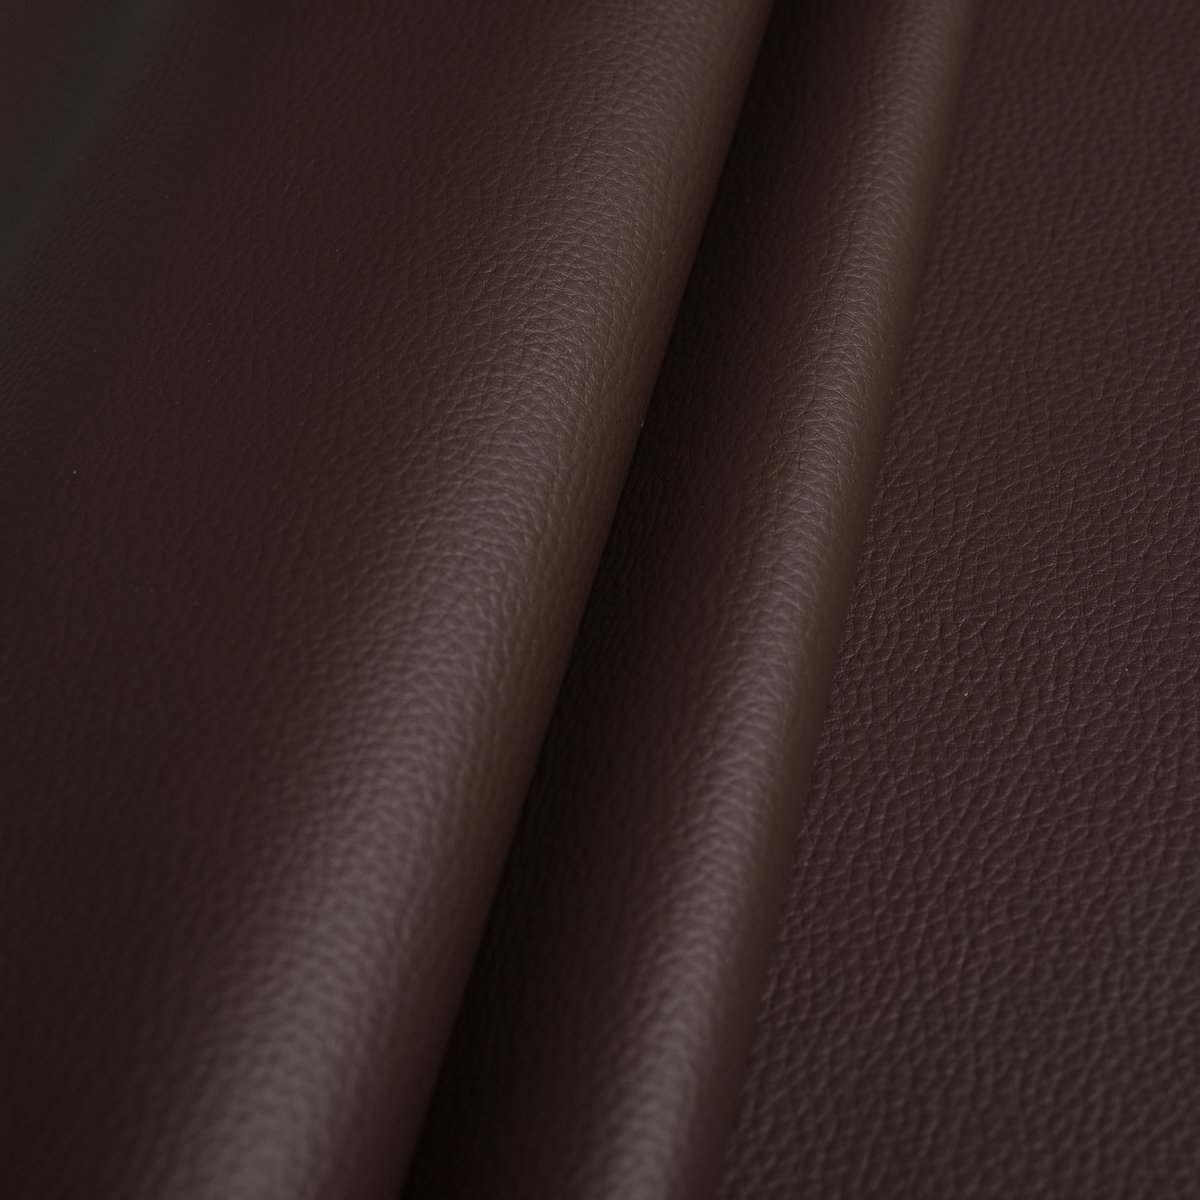 FAUX LEATHER LEATHERETTE UPHOLSTERY FABRIC WIDELY USED - Brown ETA